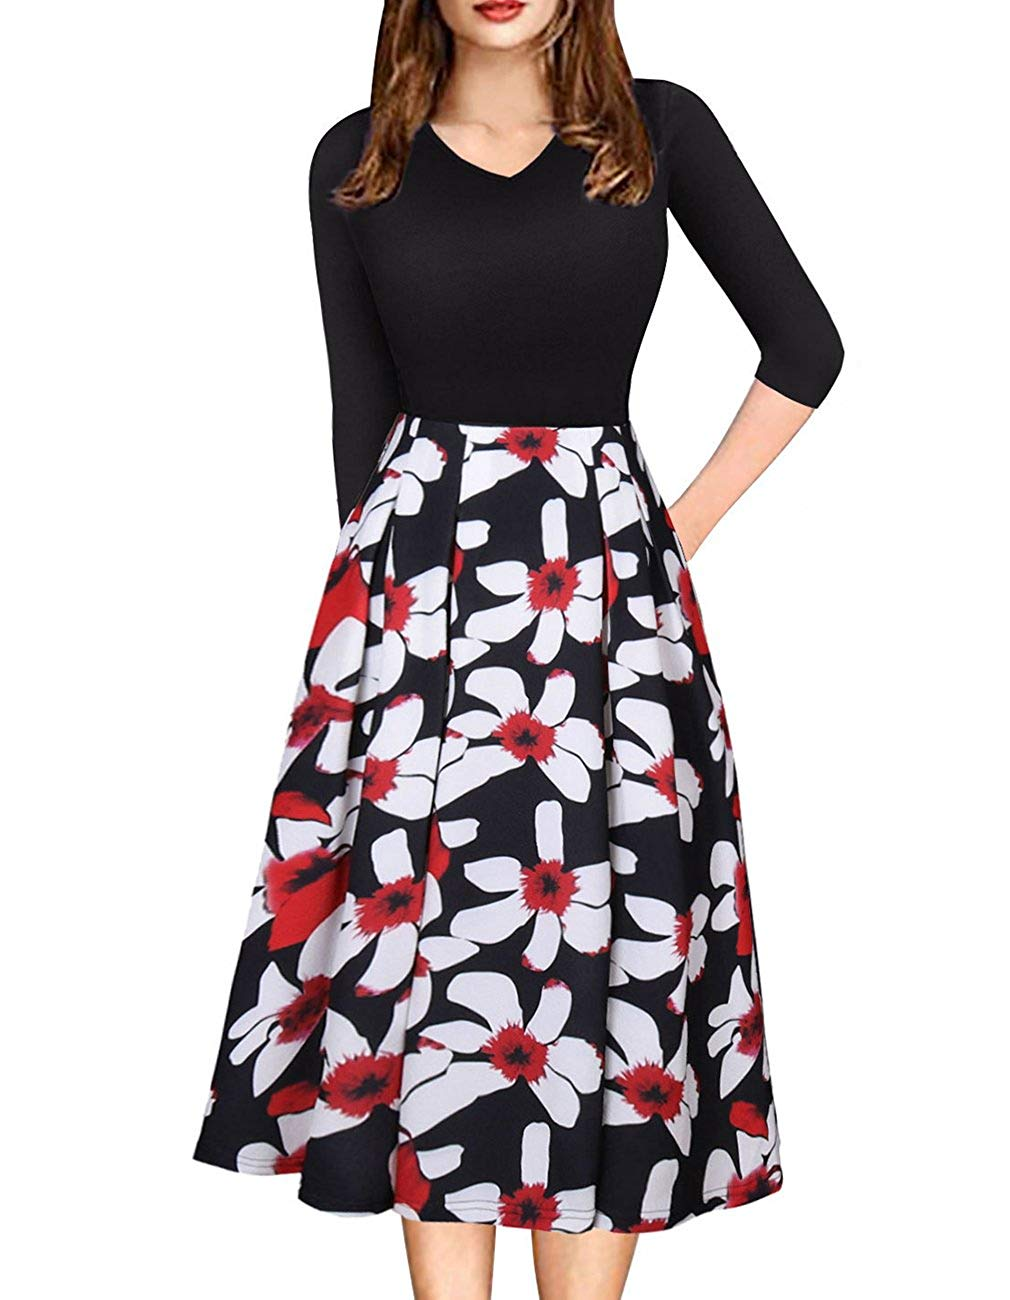 f0fb4777bc4 Get Quotations · Defal Womens Vintage 3 4 Sleeve Bohemia Floral Midi  Patchwork Dress Puffy Swing Casual Party